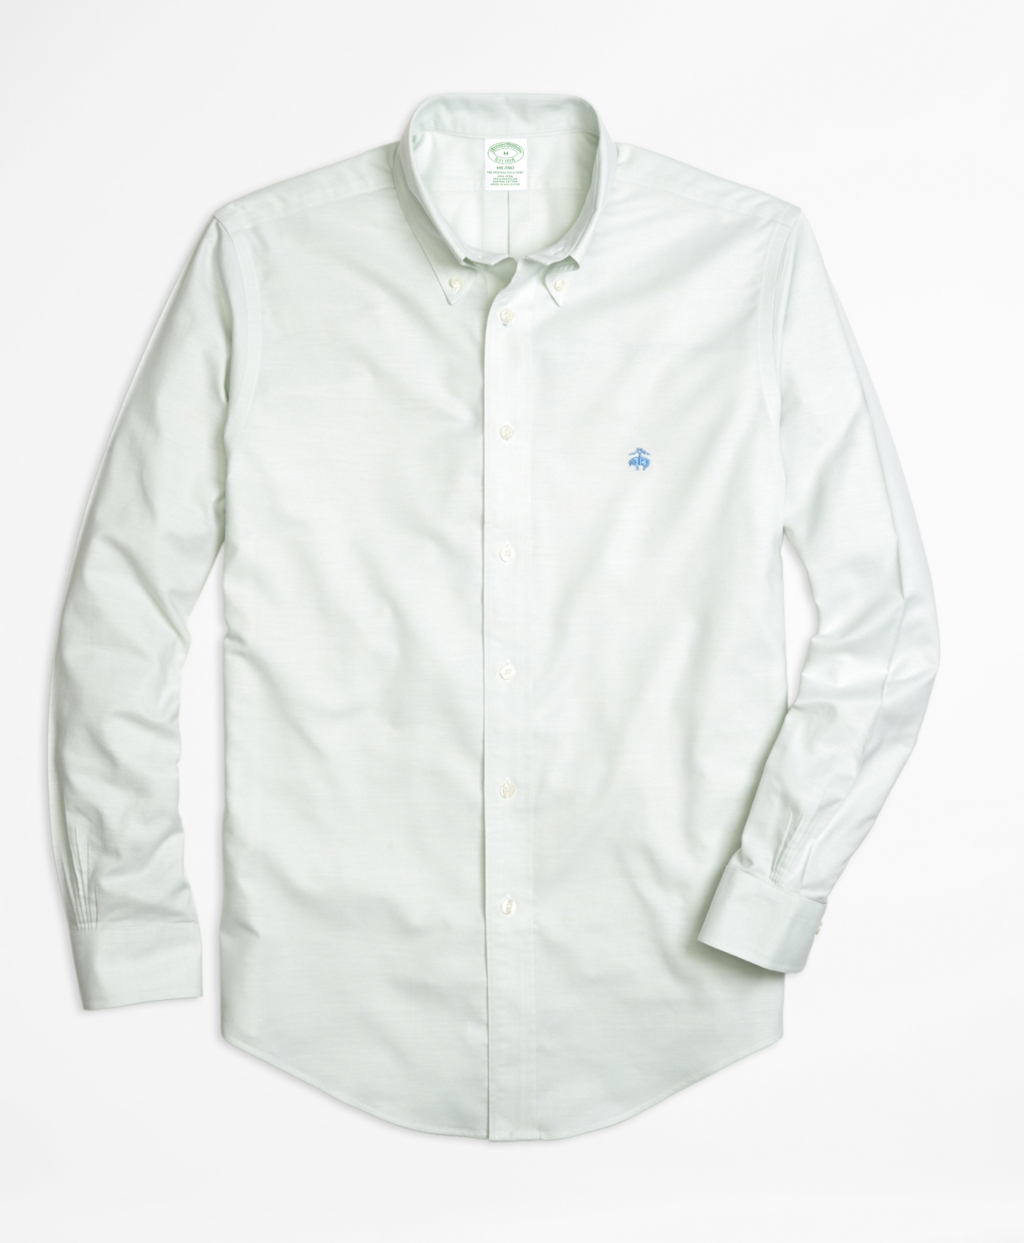 Brooks brothers non iron milano fit oxford sport shirt in for Brooks brothers non iron shirts review